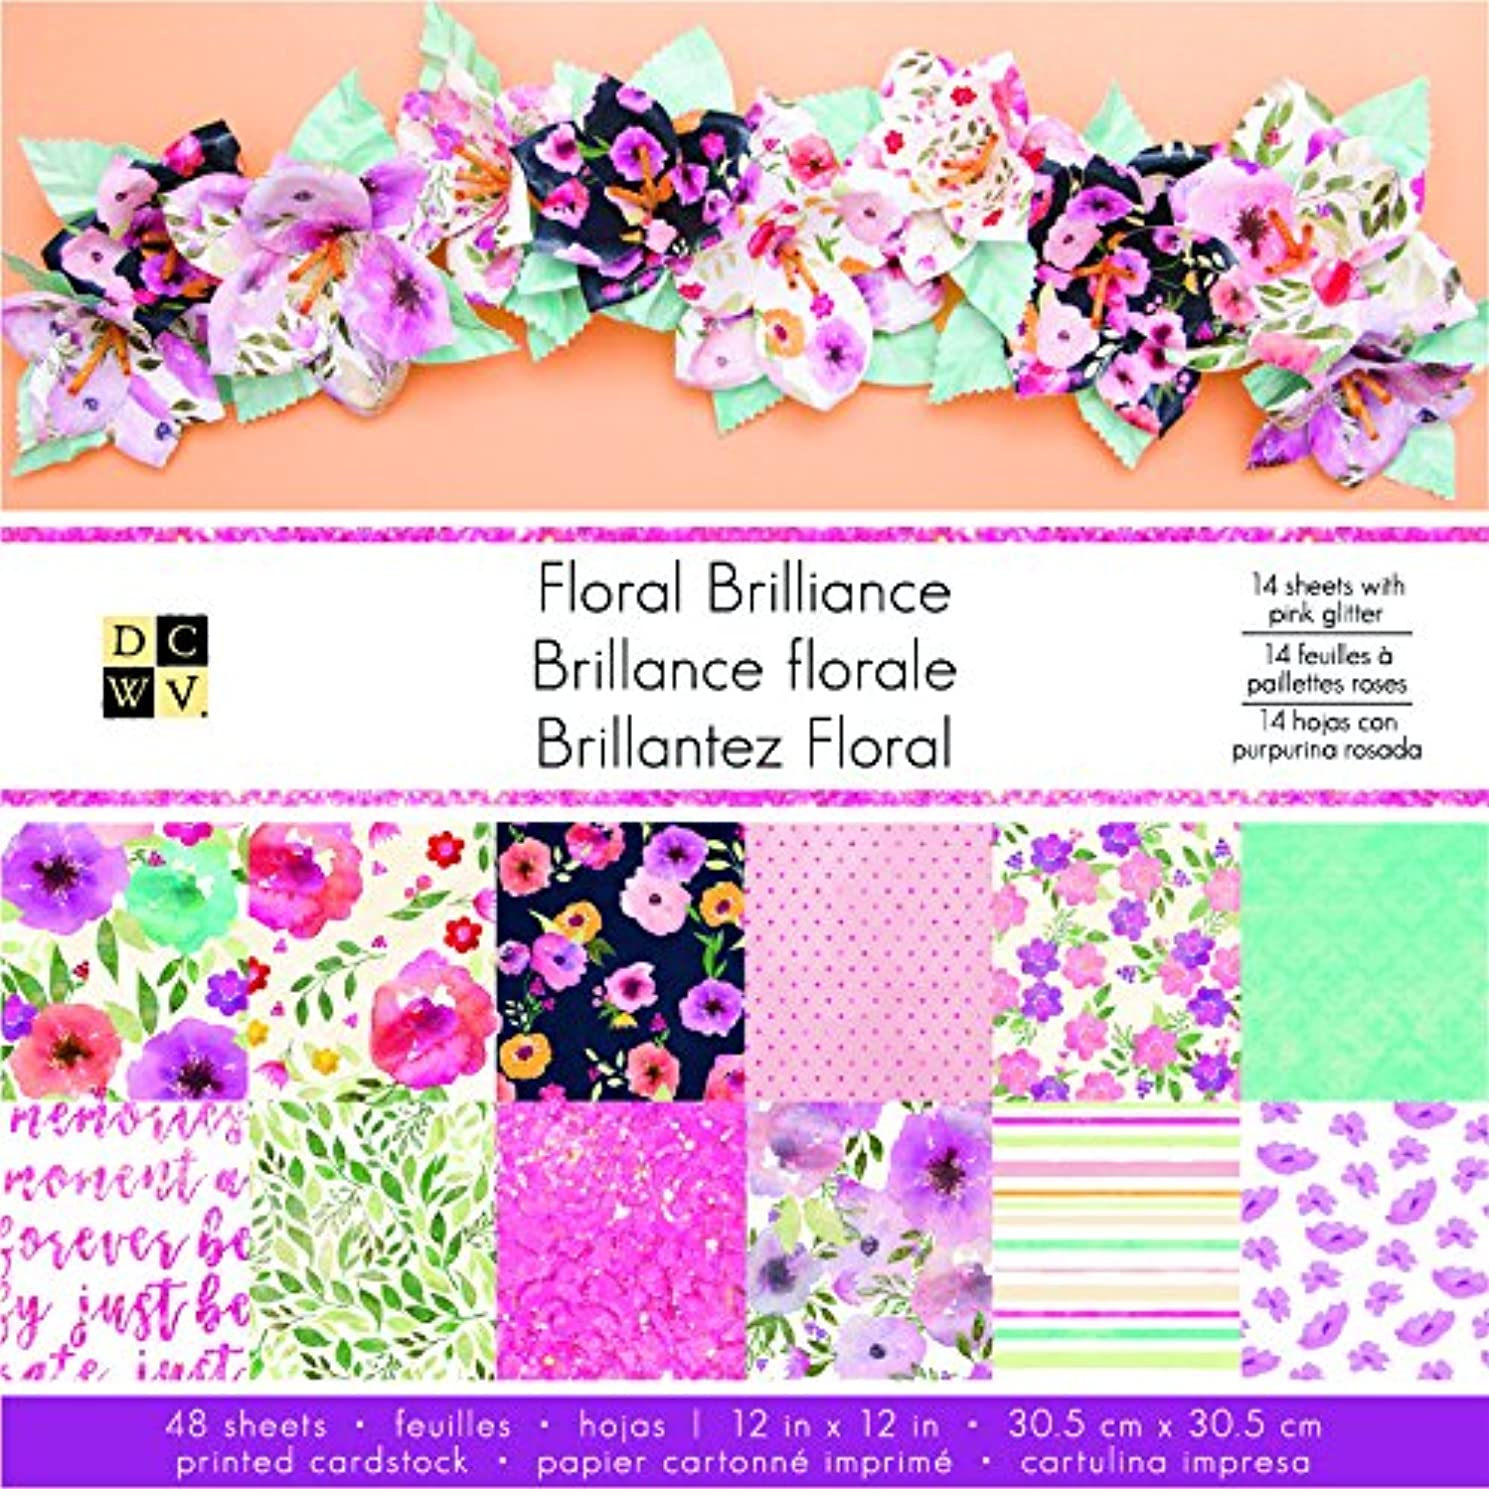 American Crafts 12 x 12 Inch Floral Brilliance 48 Sheets Die Cuts with a View Stacks